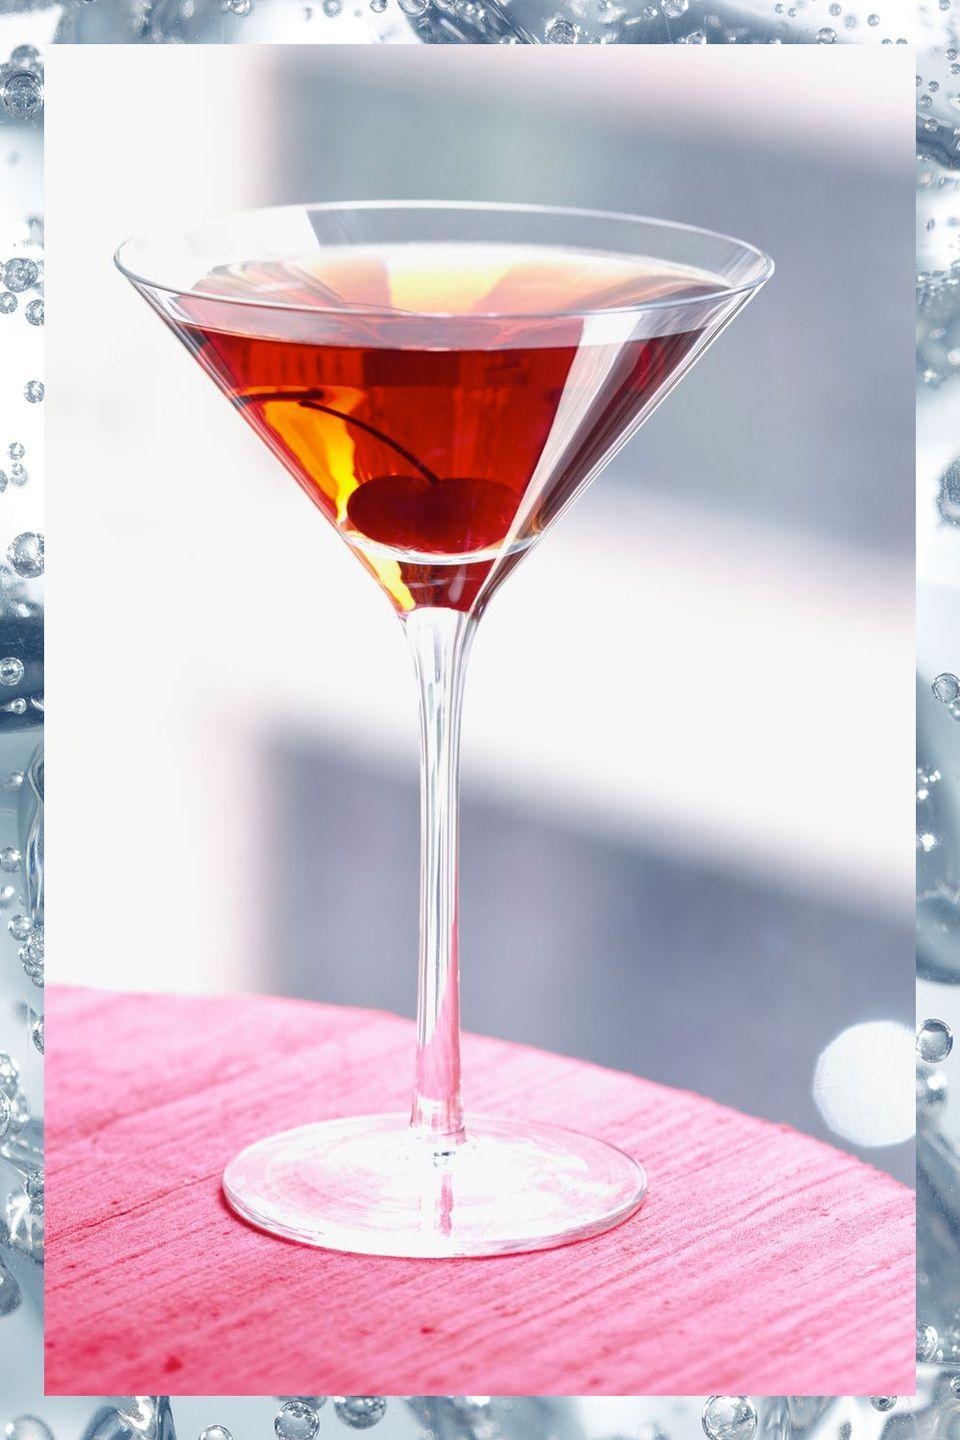 """<p>Created sometime in the mid-1800s, the Manhattan is one of the booziest classic drink recipes. </p><p>- 2 oz rye whiskey<br>- 1 oz sweet vermouth<br>- 2 dashes Angostura bitters</p><p><em>Stir ingredients in a mixing glass with ice. Strain into chilled <a href=""""https://www.amazon.com/Riedel-VINUM-Martini-Glasses-Set/dp/B000W06570/?tag=syn-yahoo-20&ascsubtag=%5Bartid%7C10067.g.13092298%5Bsrc%7Cyahoo-us"""" rel=""""nofollow noopener"""" target=""""_blank"""" data-ylk=""""slk:martini glass"""" class=""""link rapid-noclick-resp"""">martini glass</a> or <a href=""""https://www.amazon.com/Libbey-Perception-Cocktail-Coupe-Glass/dp/B009XD642S?tag=syn-yahoo-20&ascsubtag=%5Bartid%7C10067.g.13092298%5Bsrc%7Cyahoo-us"""" rel=""""nofollow noopener"""" target=""""_blank"""" data-ylk=""""slk:cocktail coupe"""" class=""""link rapid-noclick-resp"""">cocktail coupe</a>.</em><strong><br></strong></p><p><strong>More: </strong><a href=""""http://www.townandcountrymag.com/leisure/drinks/g3242/whiskey-cocktails/"""" rel=""""nofollow noopener"""" target=""""_blank"""" data-ylk=""""slk:Whiskey Cocktails to Shake Up Your Bar Cart"""" class=""""link rapid-noclick-resp"""">Whiskey Cocktails to Shake Up Your Bar Cart</a><br></p>"""